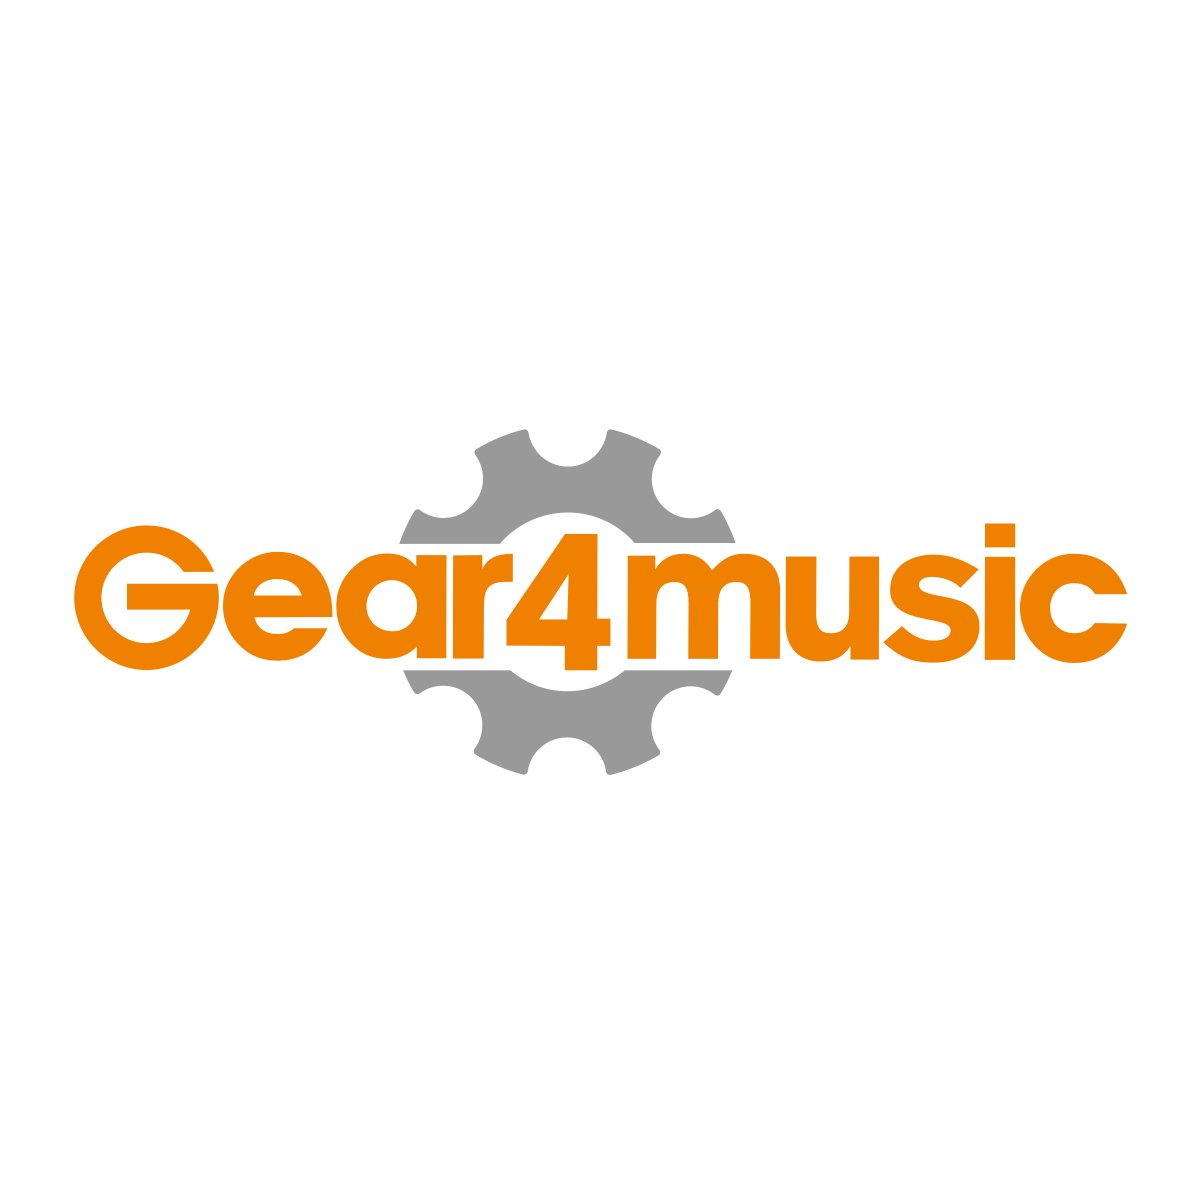 Bajo Seattle de Gear4music - Blanco